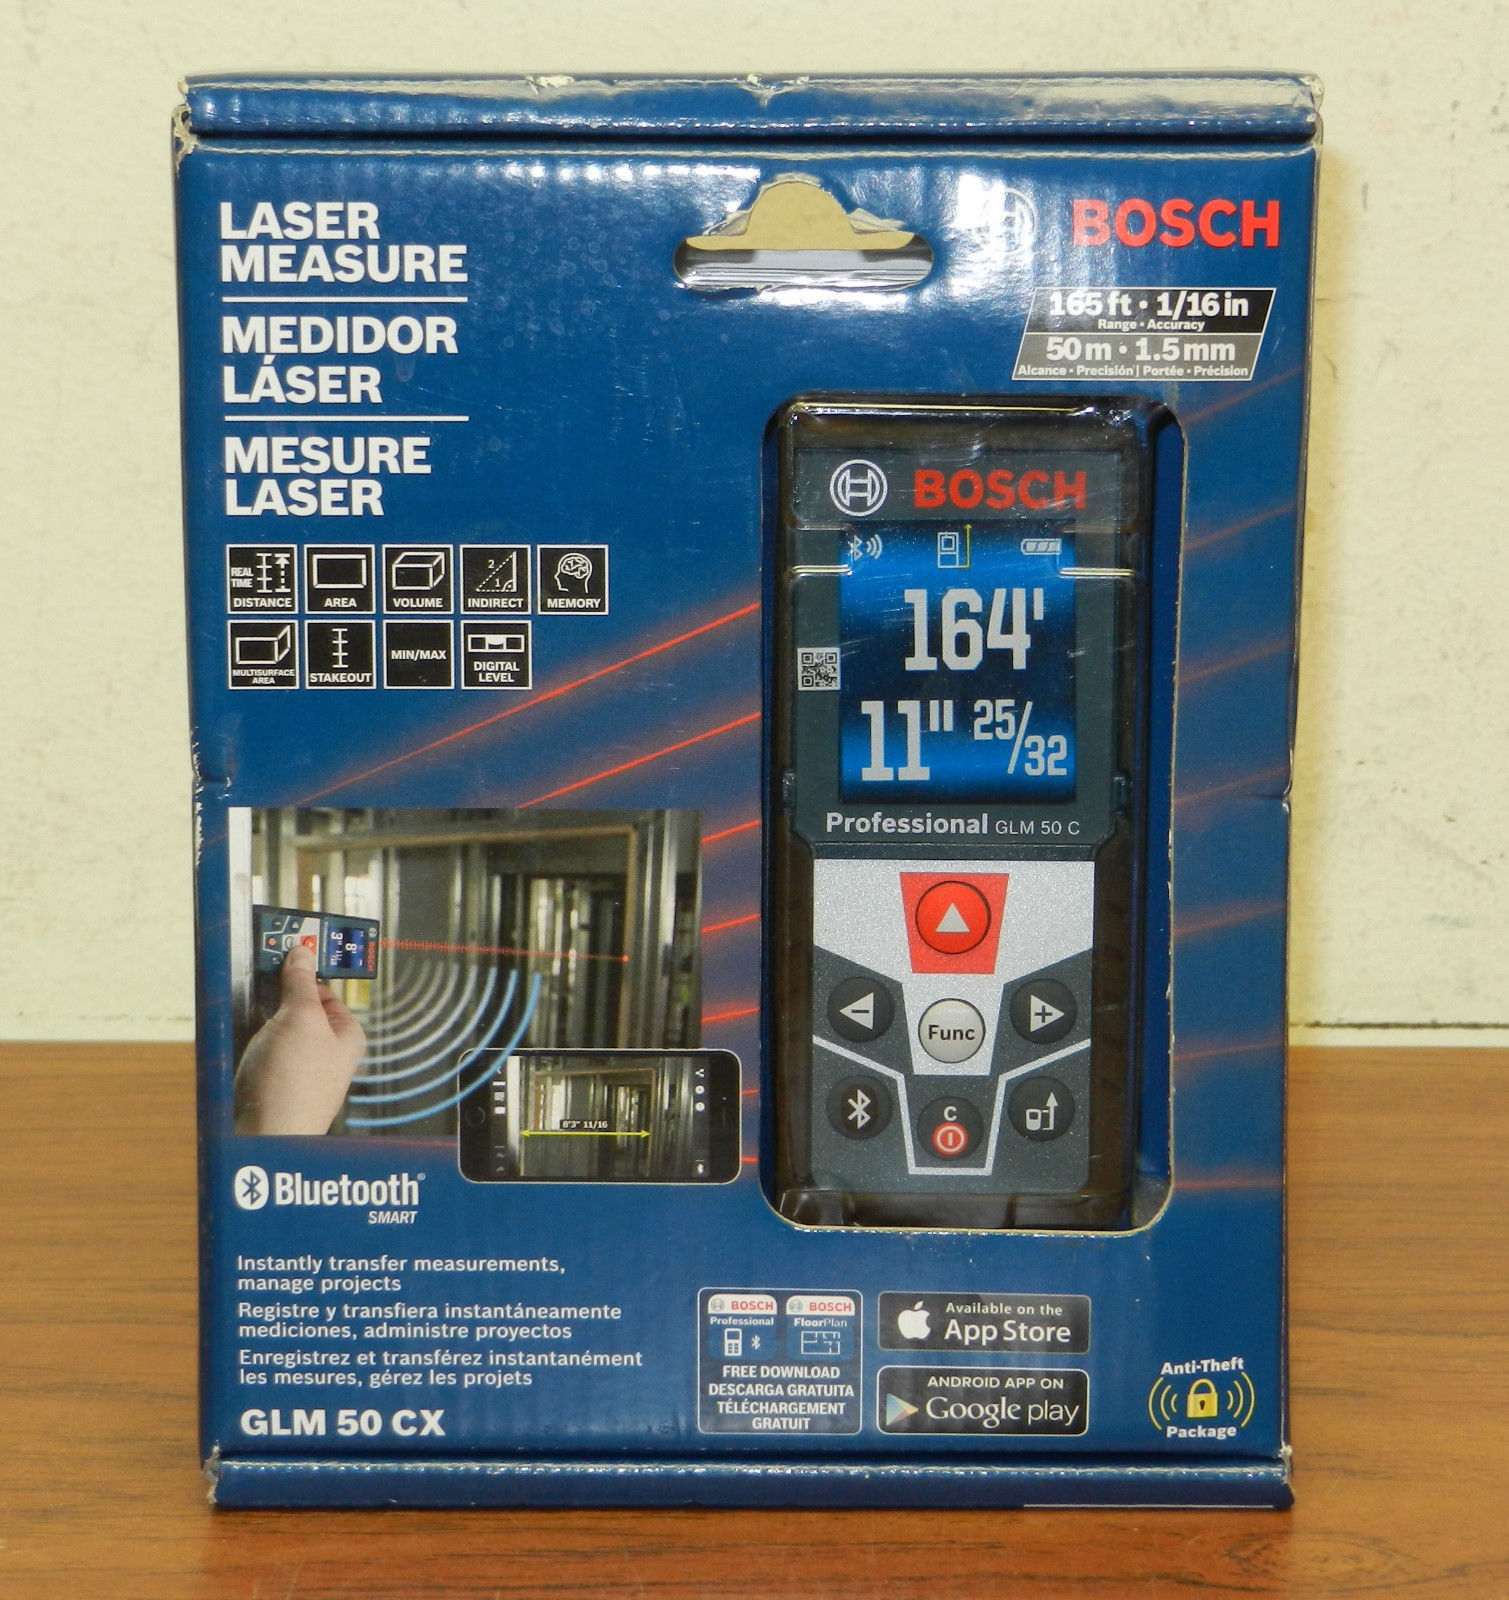 BOSCH - GLM50 CX - LASER LEVEL